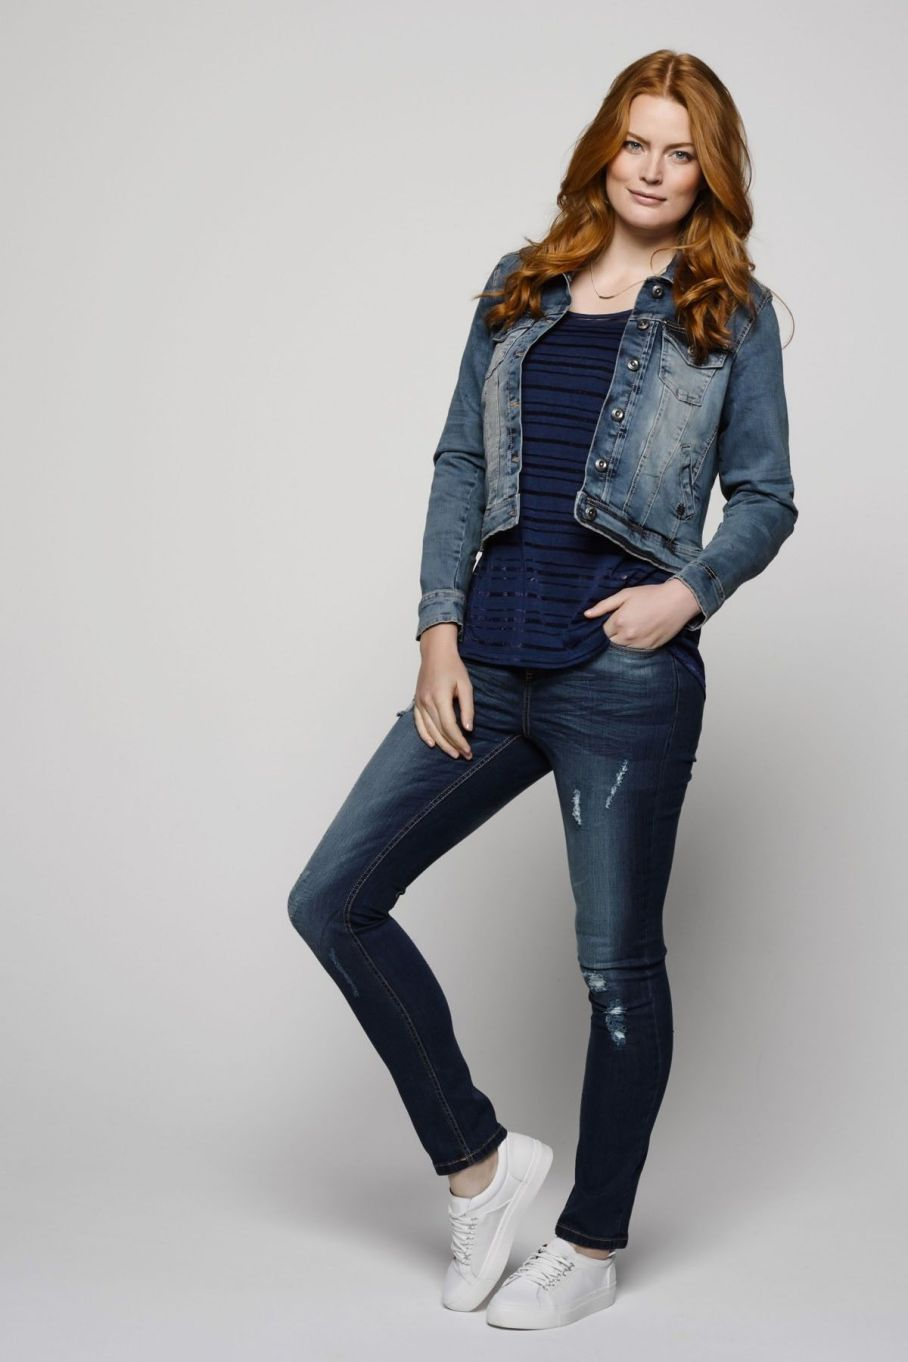 Casual Denim Tienda Online Ms Mode Curvy Outfit Pinterest Clothing